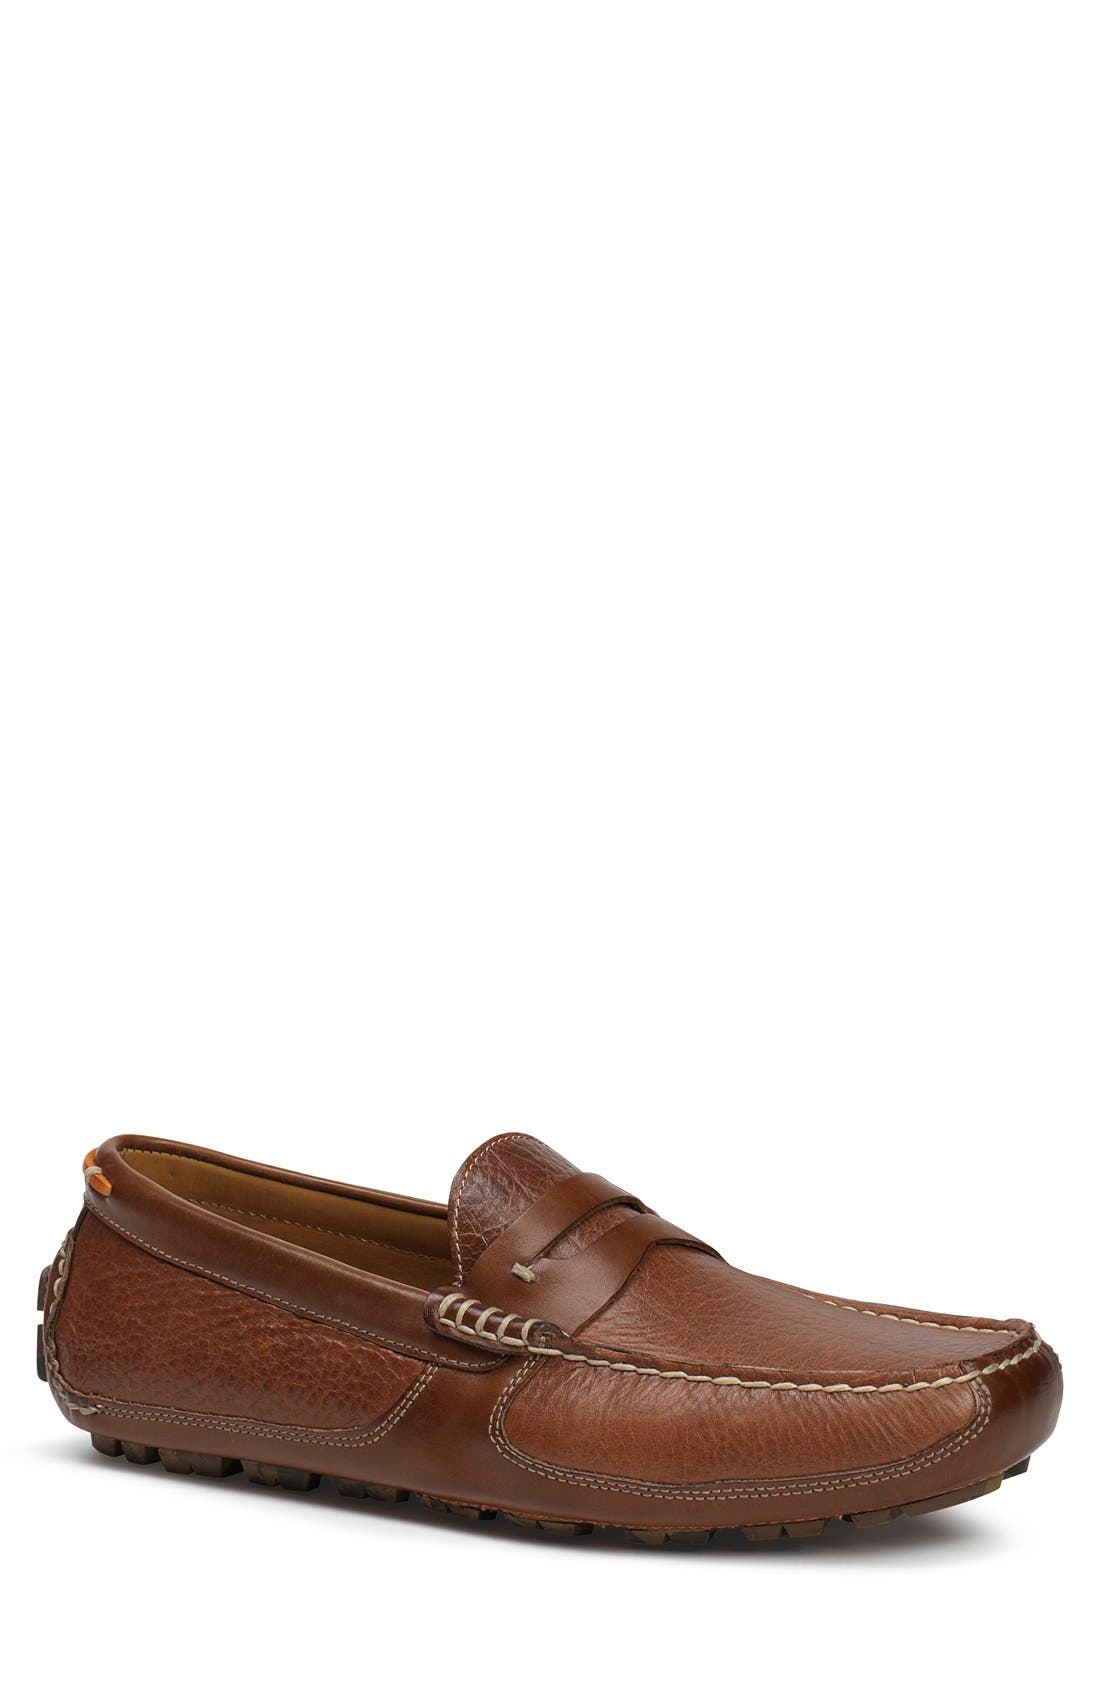 Two-tone construction defines a handsome driving shoe with versatile appeal. Style Name: Trask \\\'Derek\\\' Driving Shoe (Men). Style Number: 1068642. Available in stores.